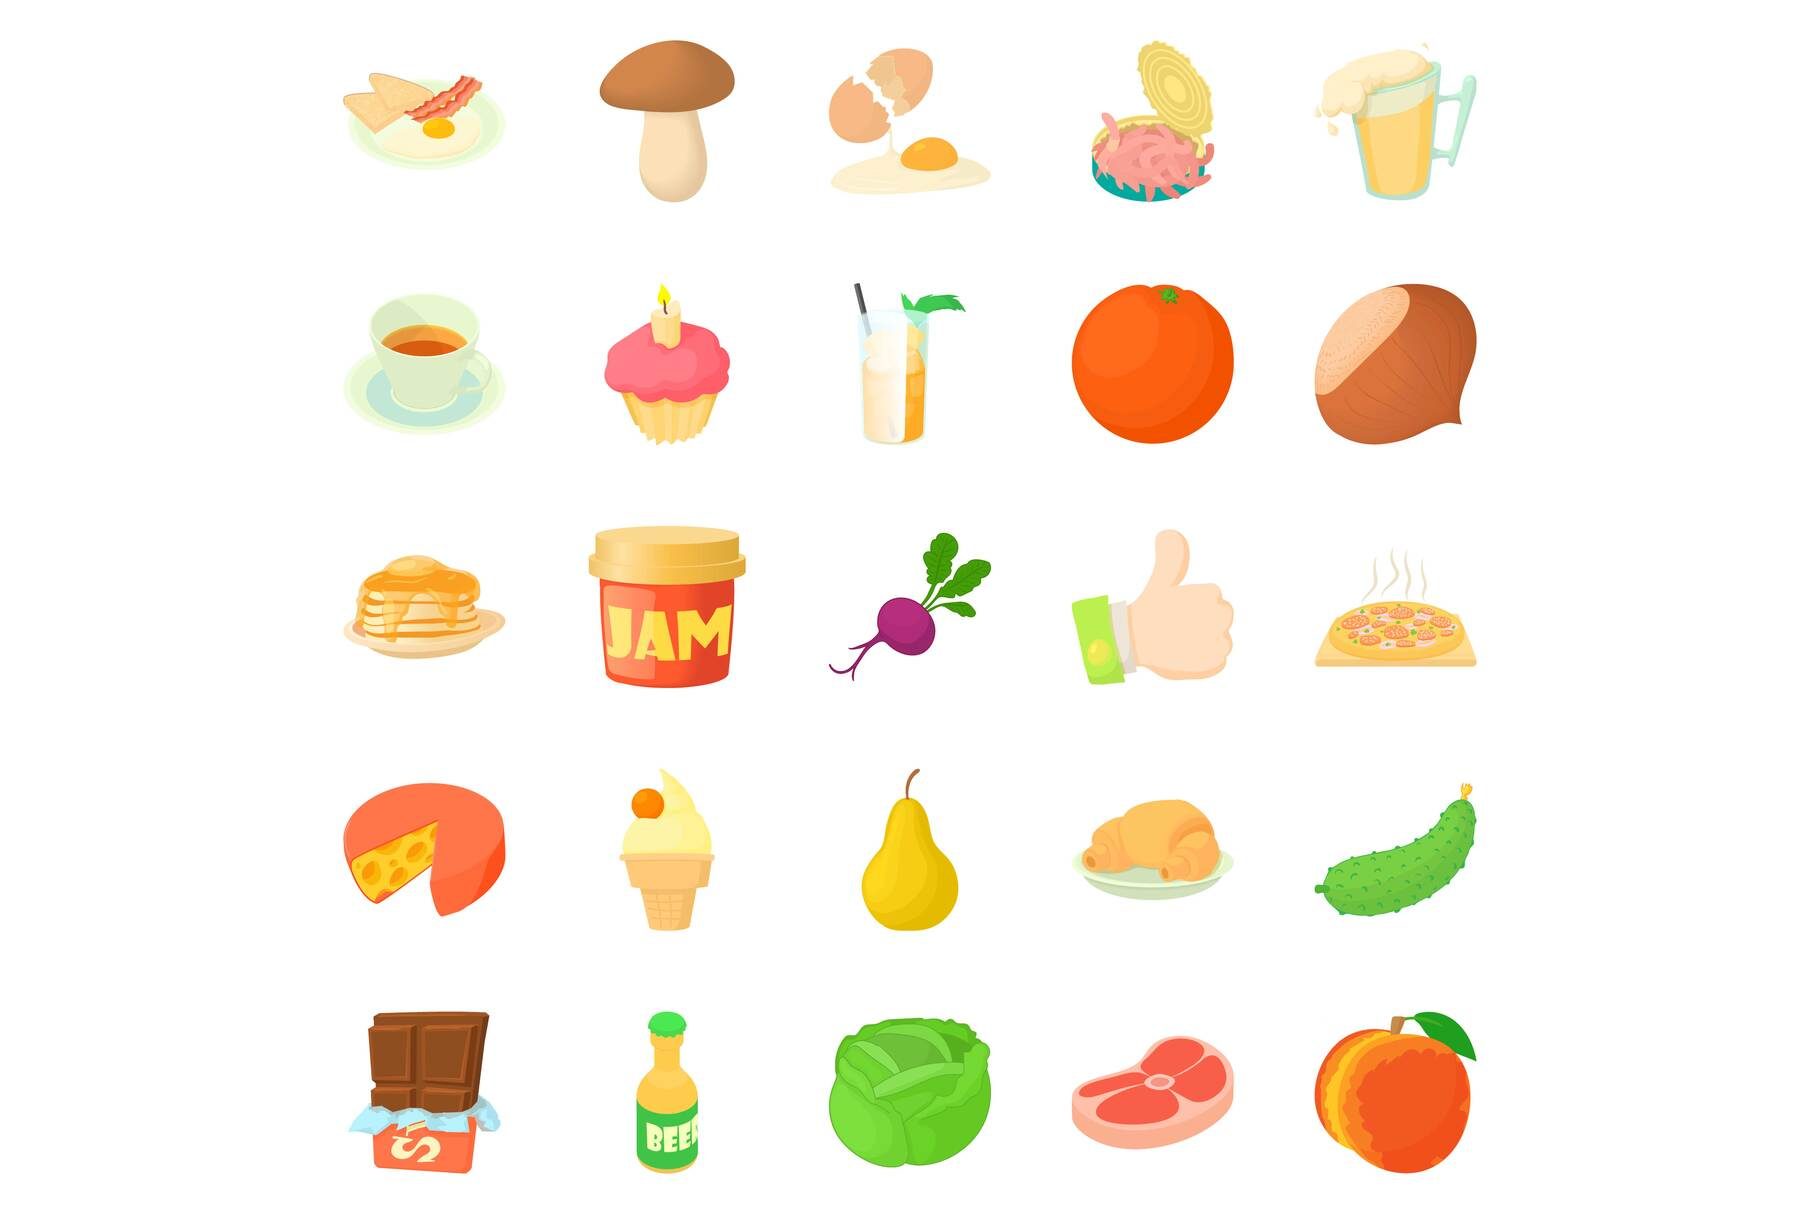 Afternoon snack icons set, cartoon style example image 1